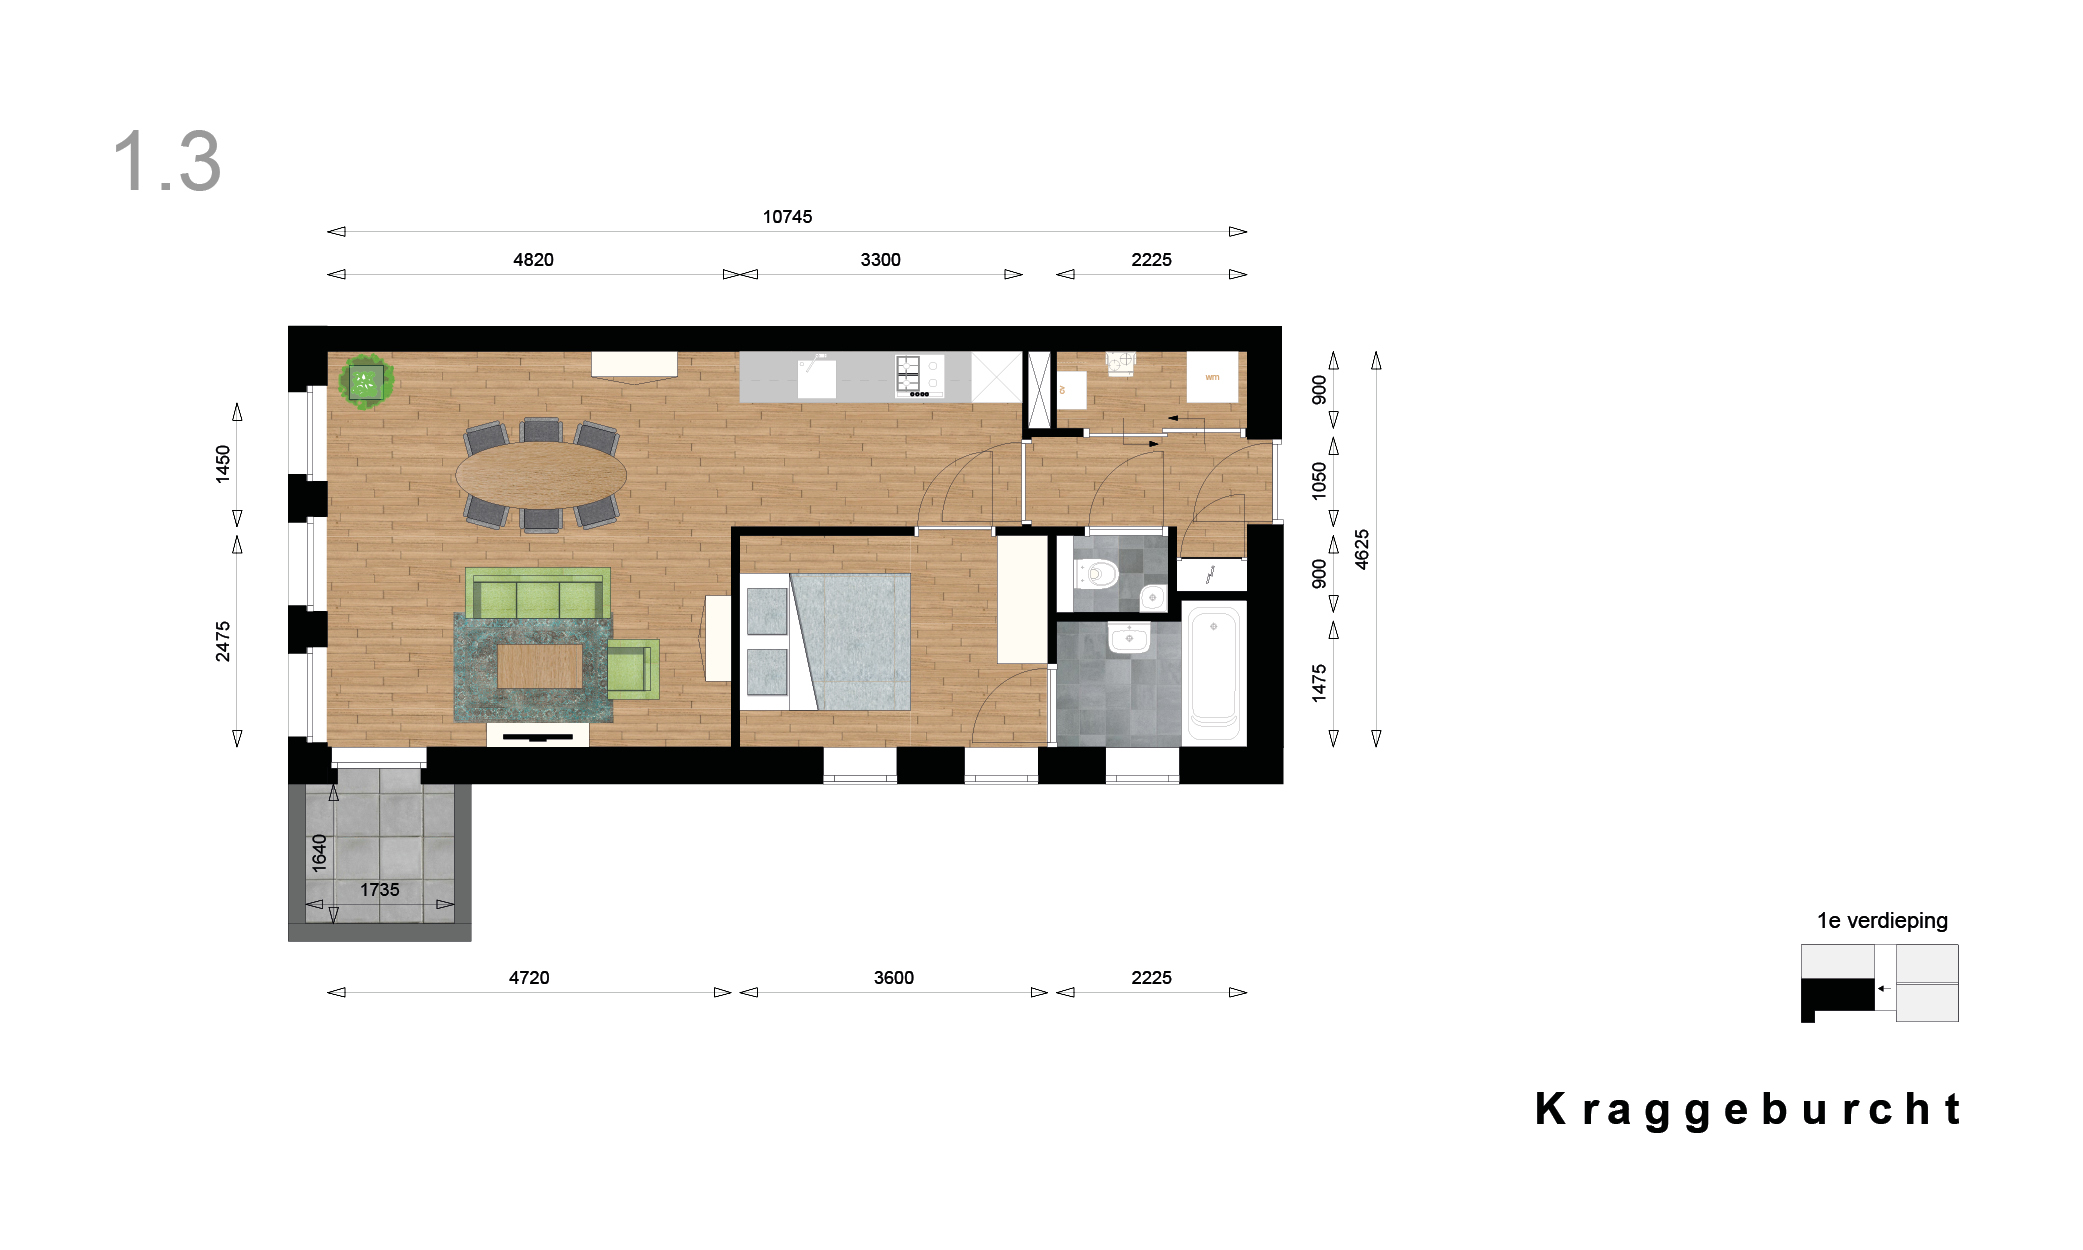 Kraggenburcht – apartment type 3